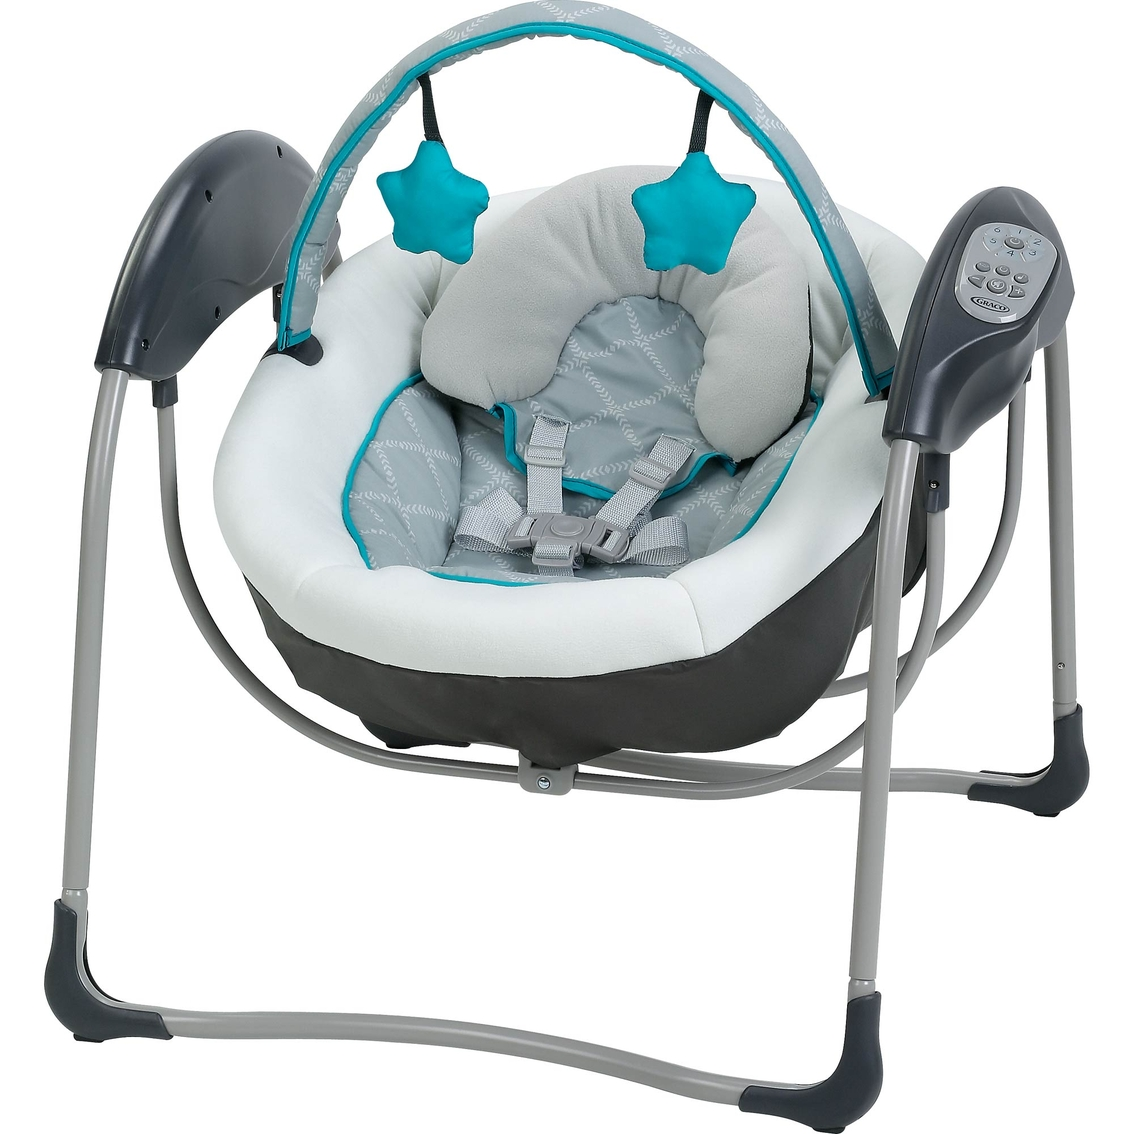 Graco Glider Lite Lx With Plug Swings Bouncers Baby